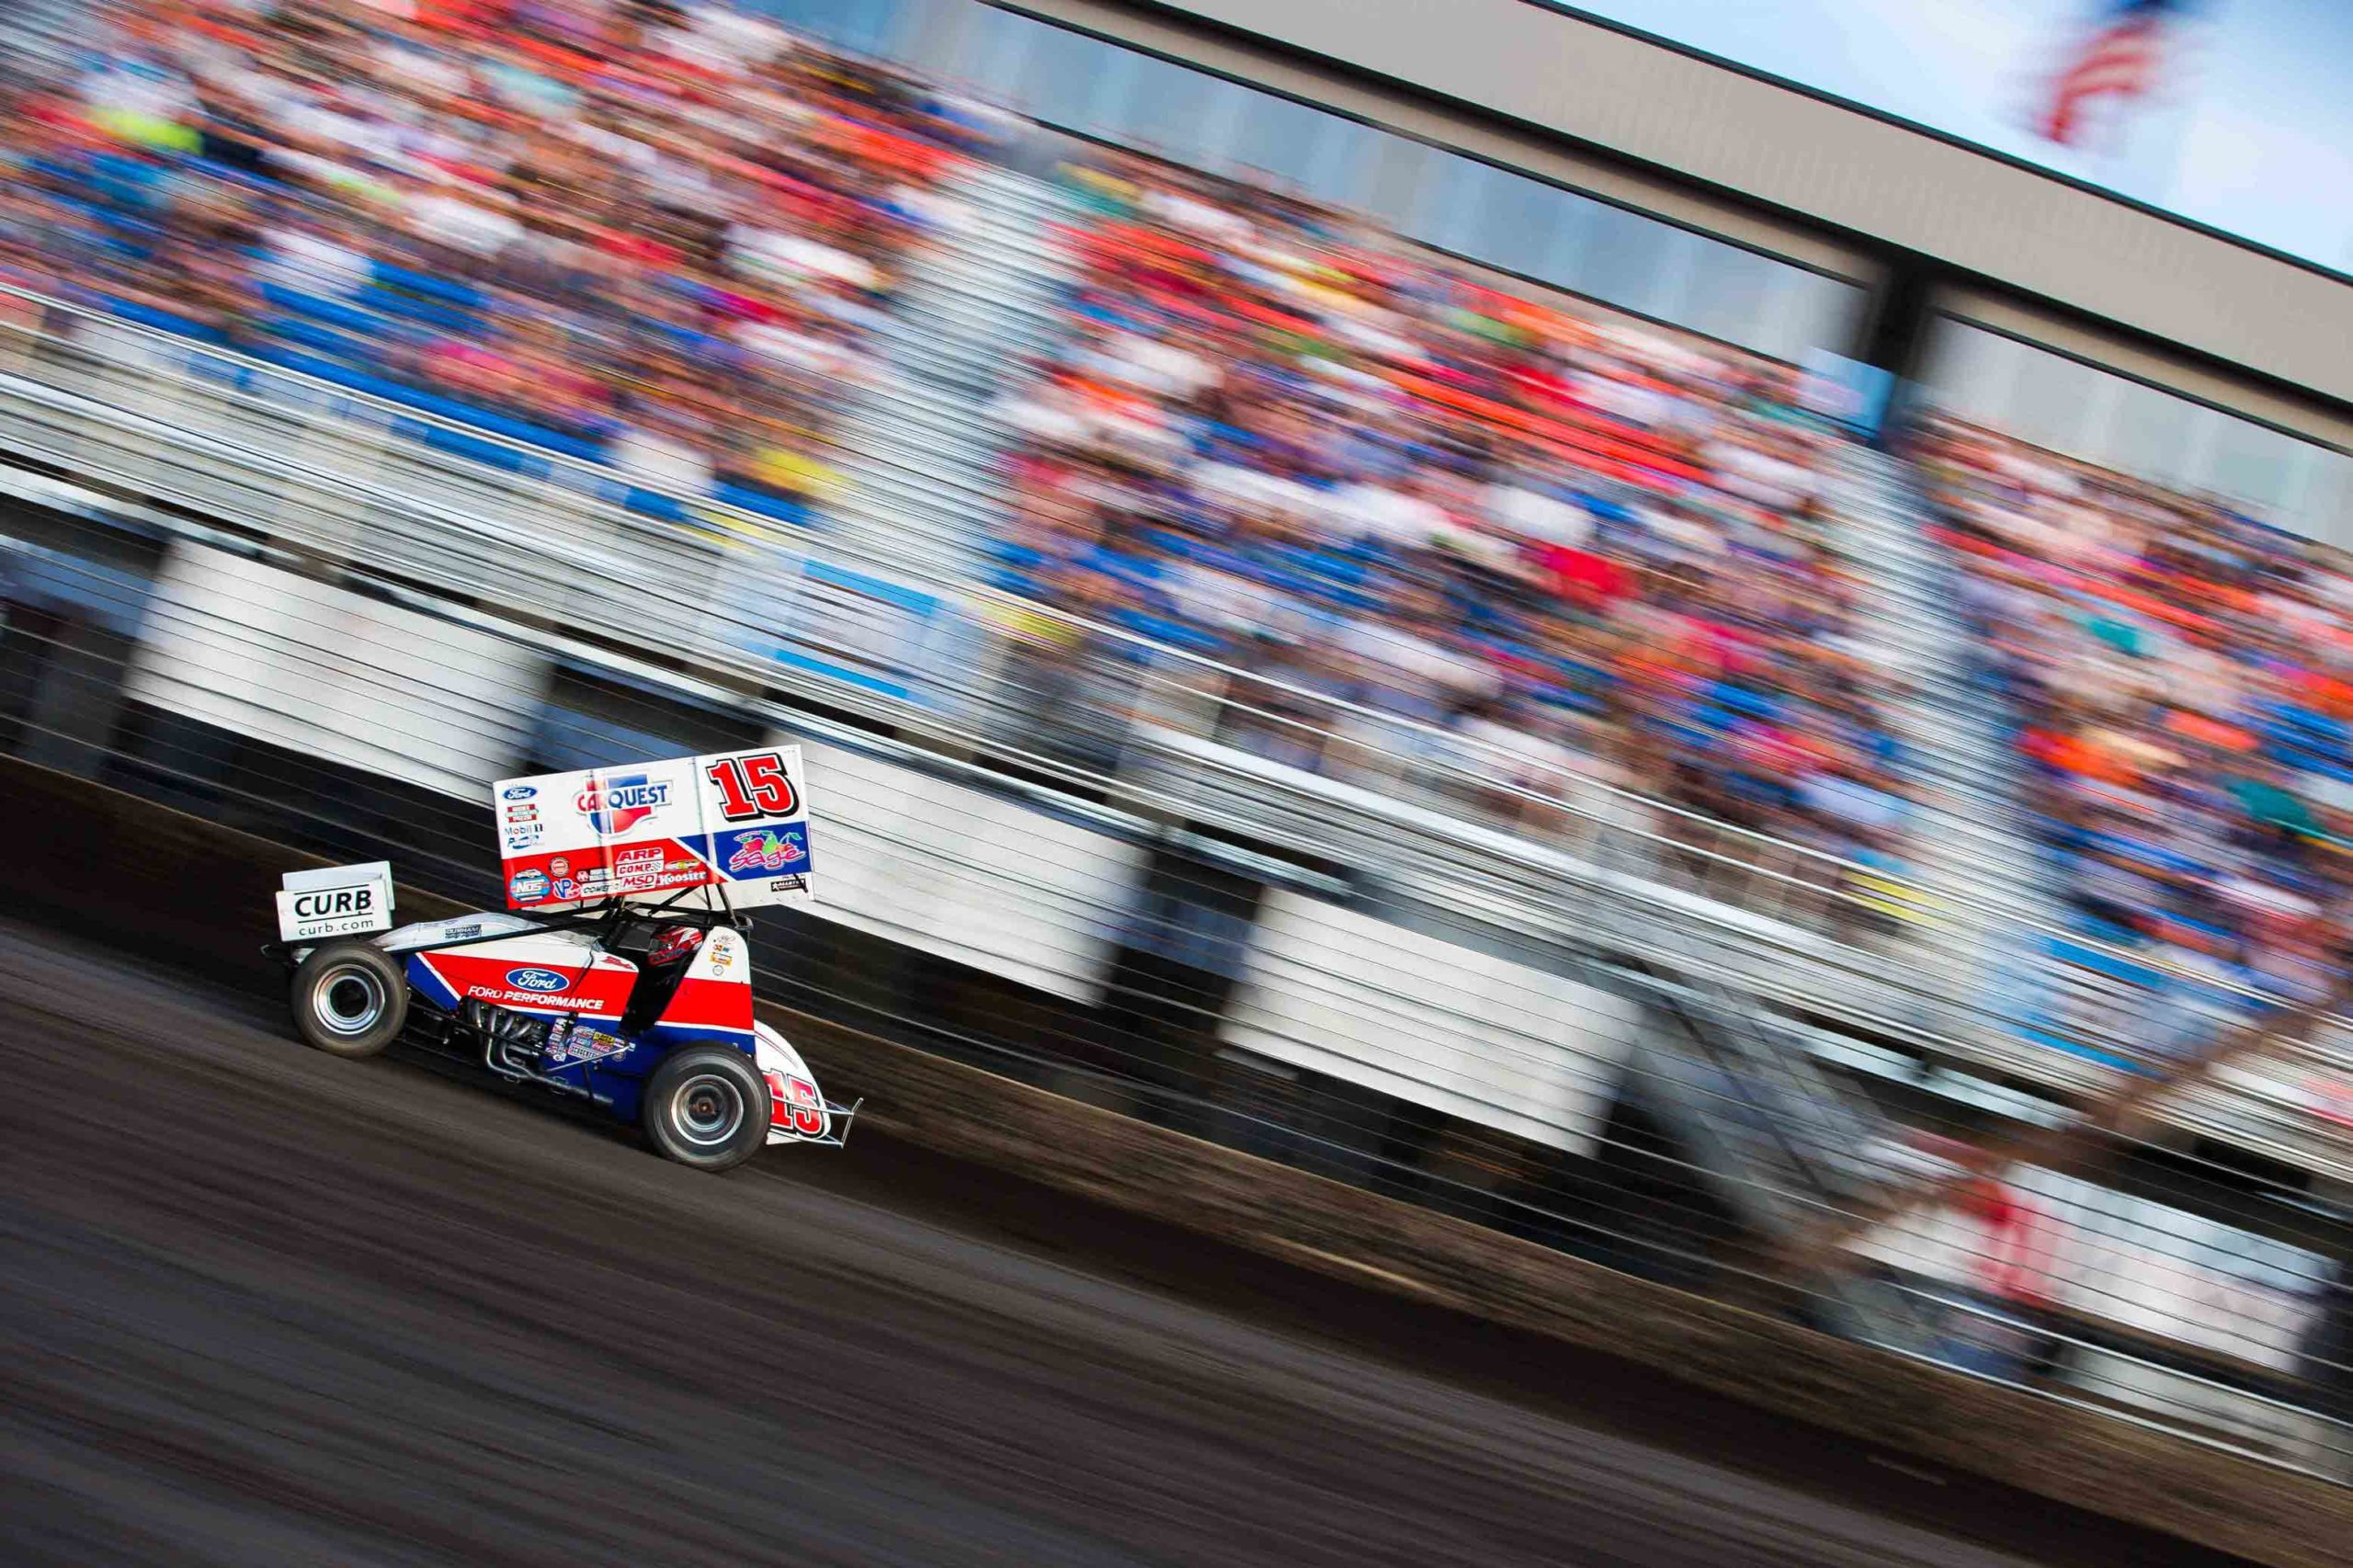 donny schatz, jackson motorplex, jackson nationals, world of outlaws, sprint cars